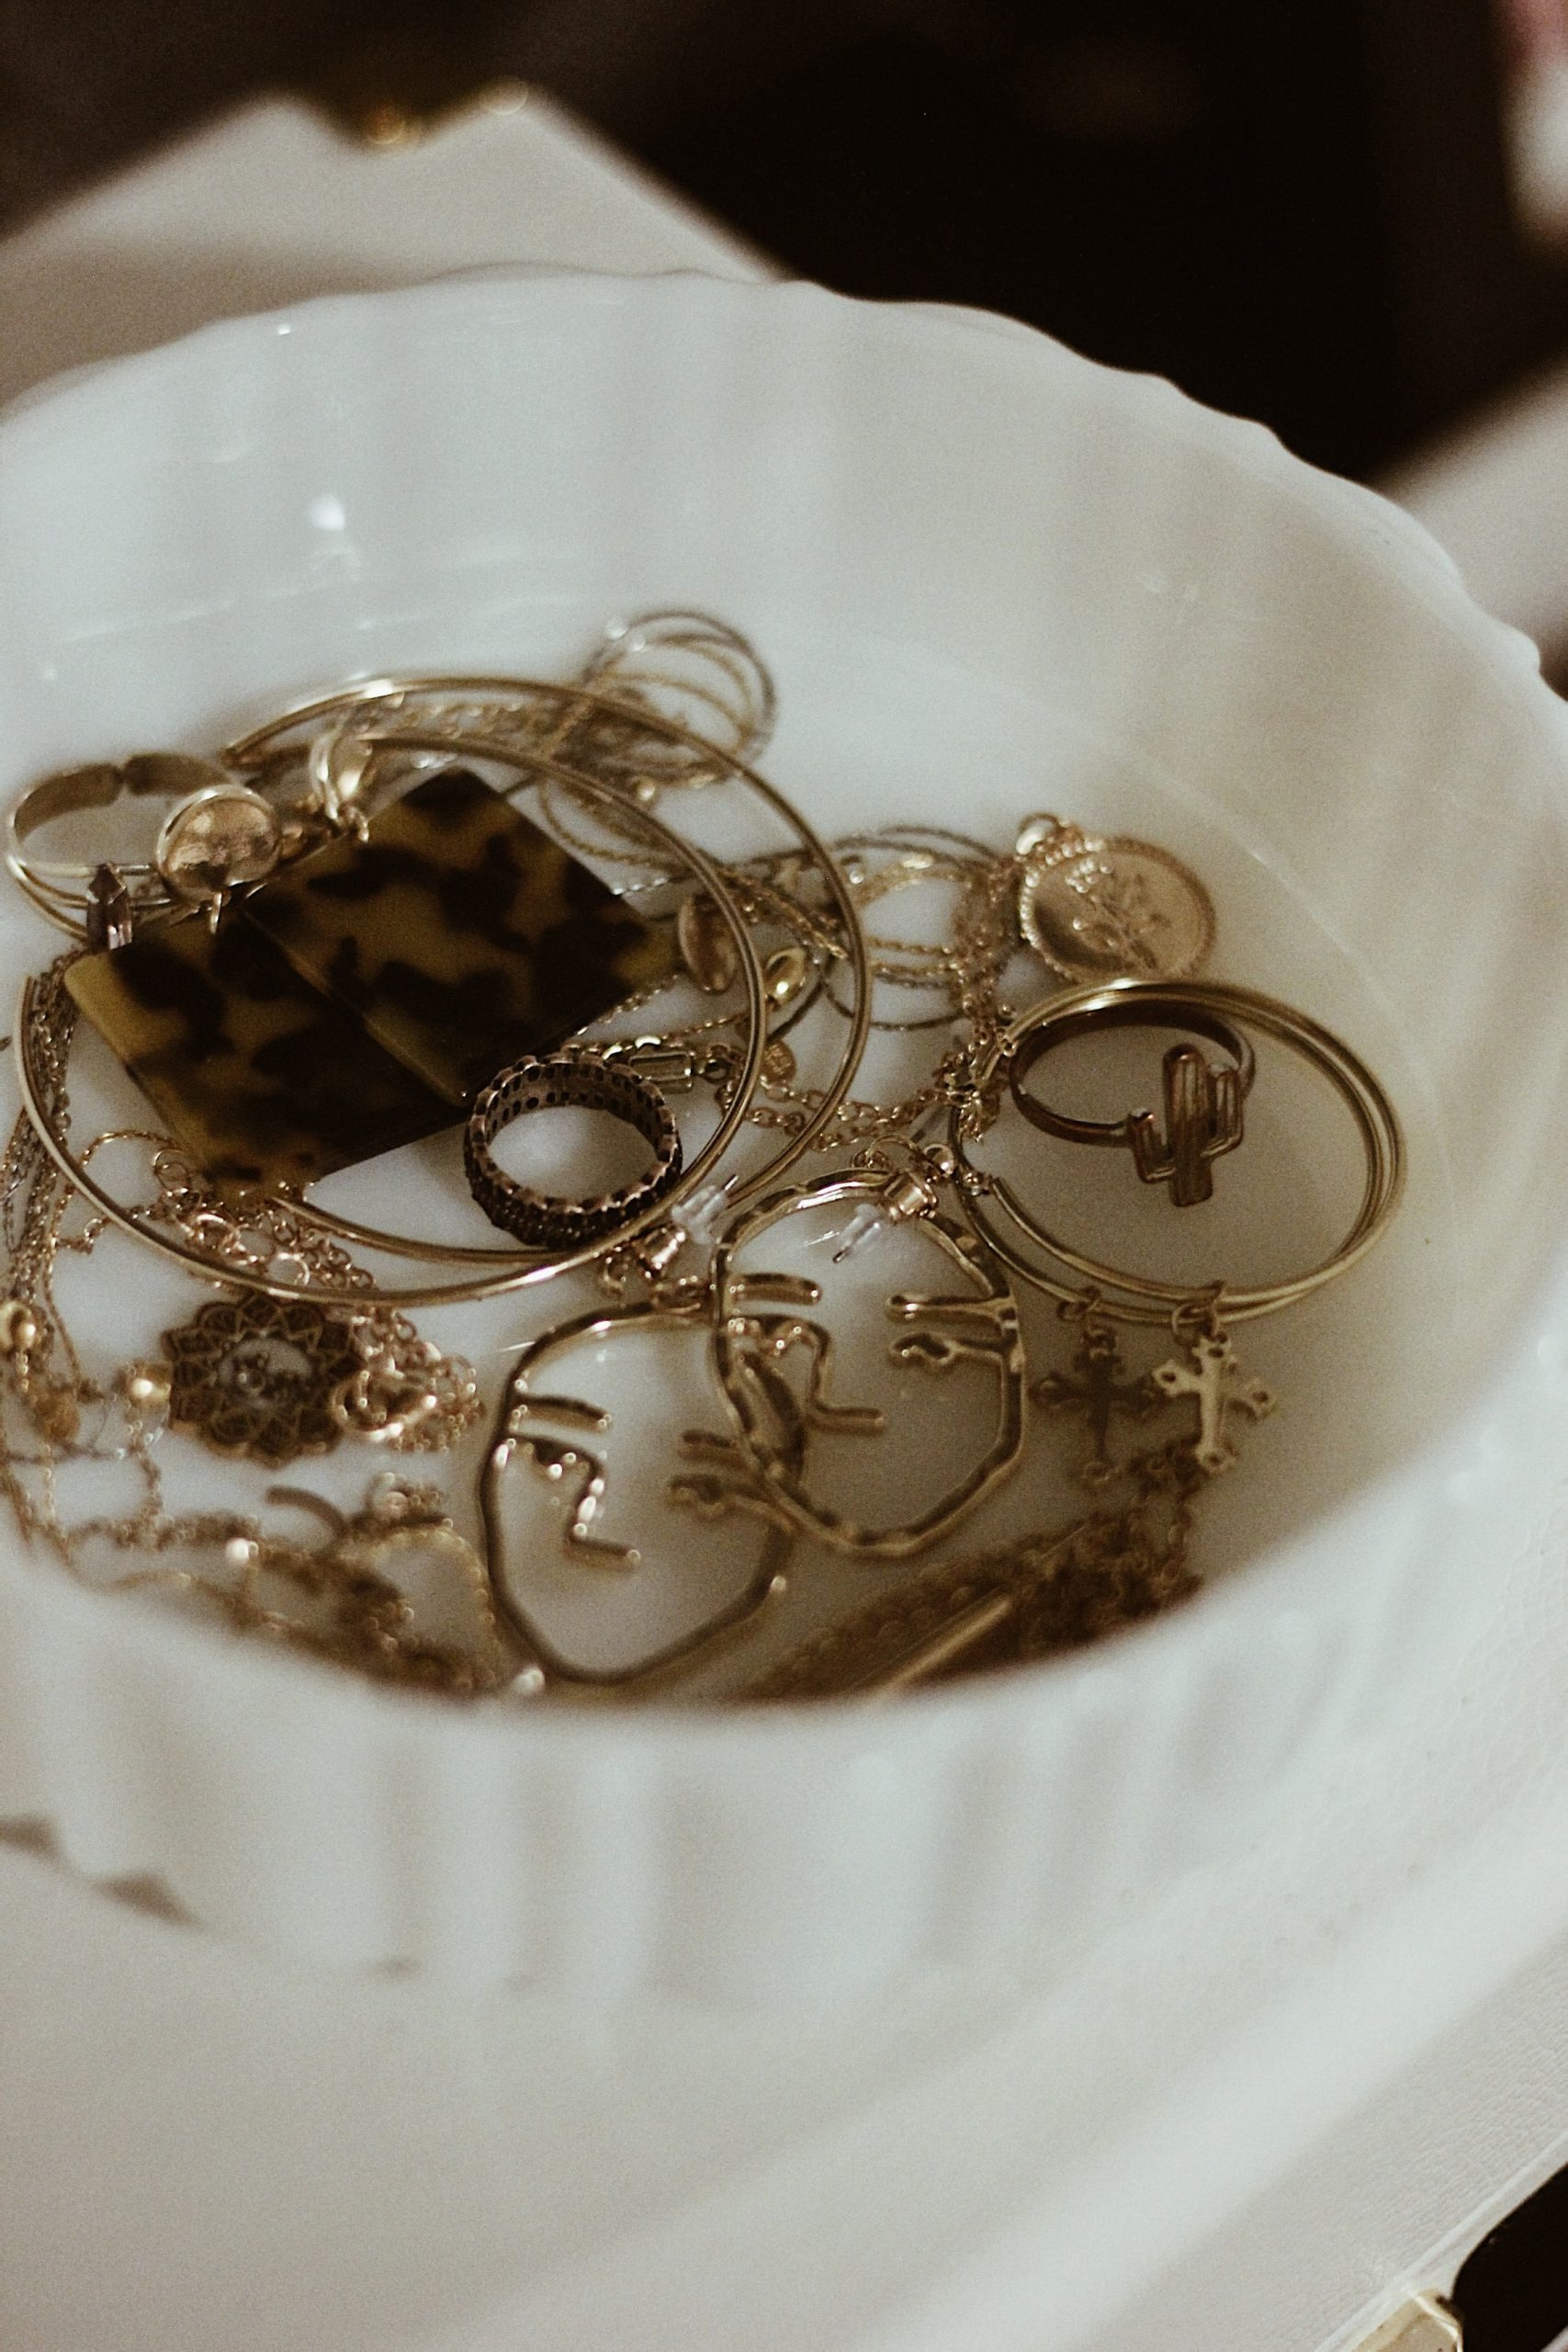 Reasons Why You Should Sell Your Old Jewellery